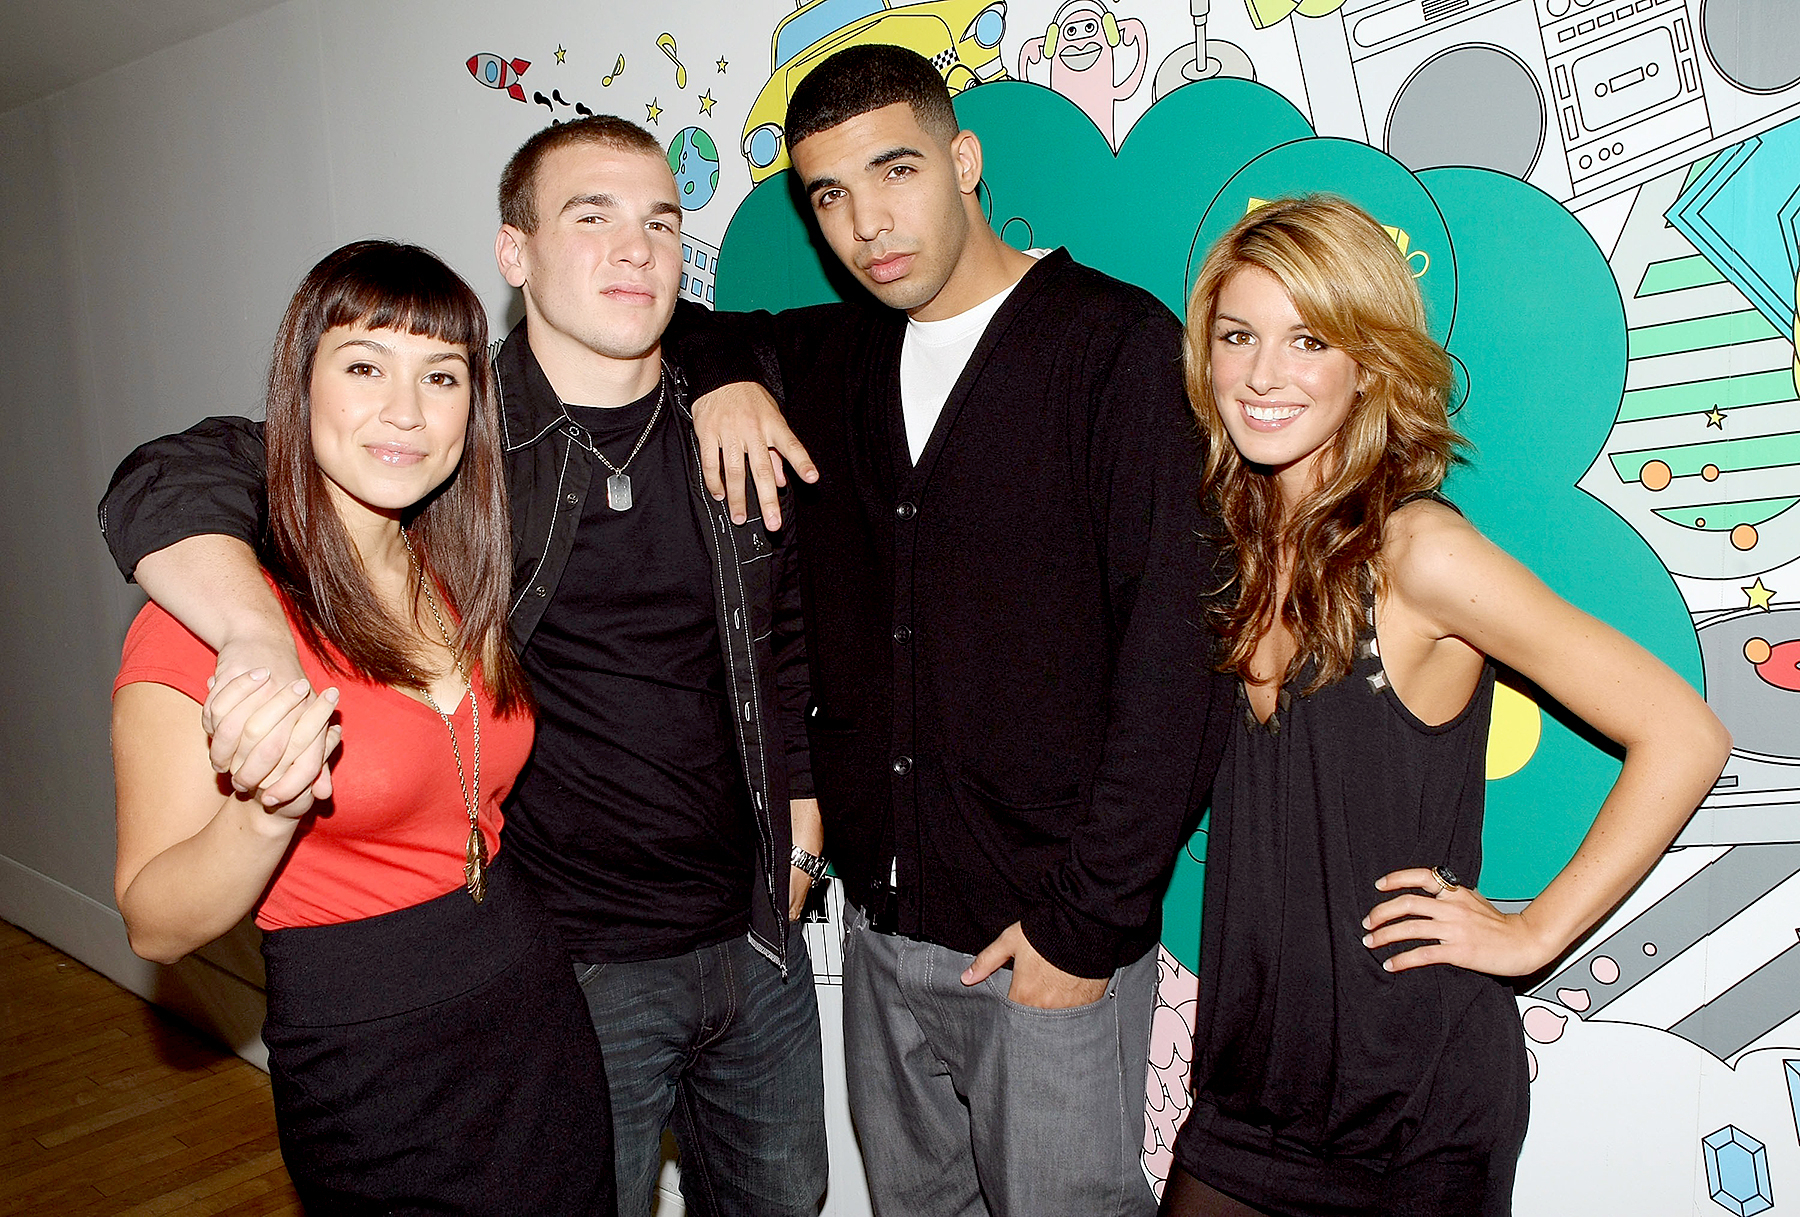 """""""DeGrassi High"""" cast members (L-R) Cassie Steele, Shane Kippel, Aubrey Graham, and Shenae Grimes pose for a photo backstage during MTV's Total Request Live at the MTV Times Square Studios on October 2, 2007 in New York City."""